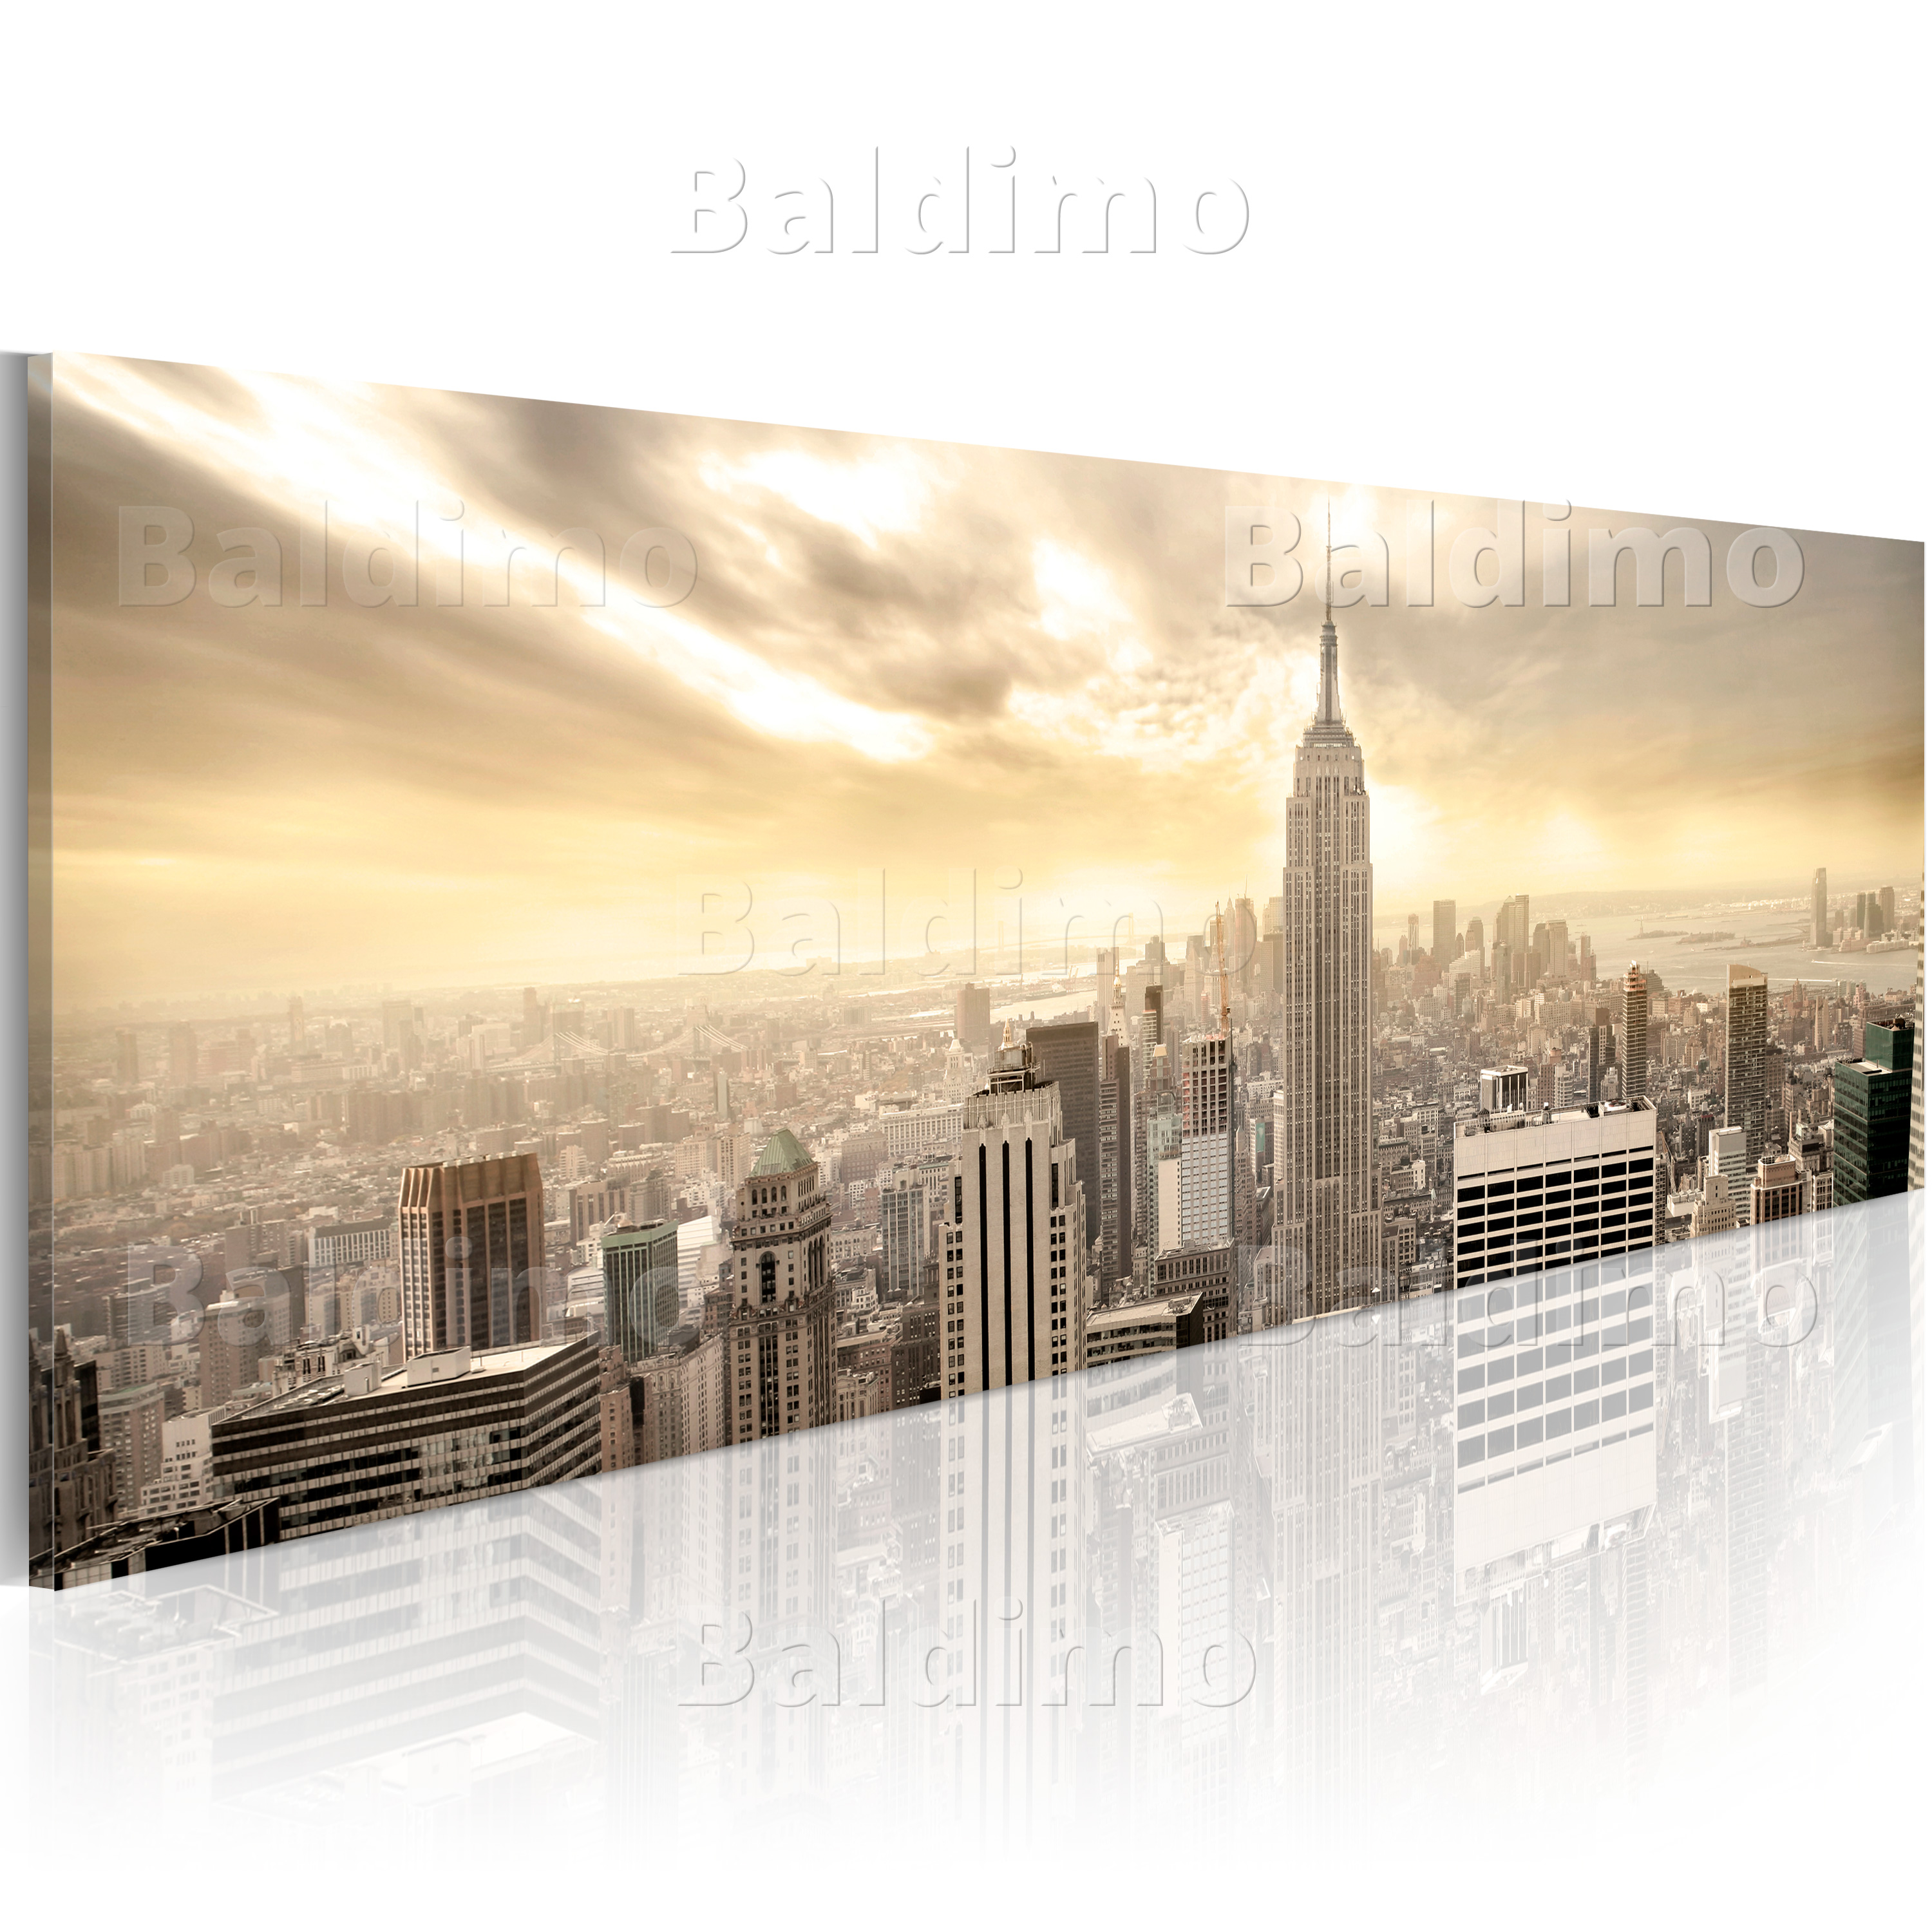 wandbilder xxl new york skyline leinwand bilder kunstdruck wohnzimmer 9020114 ebay. Black Bedroom Furniture Sets. Home Design Ideas